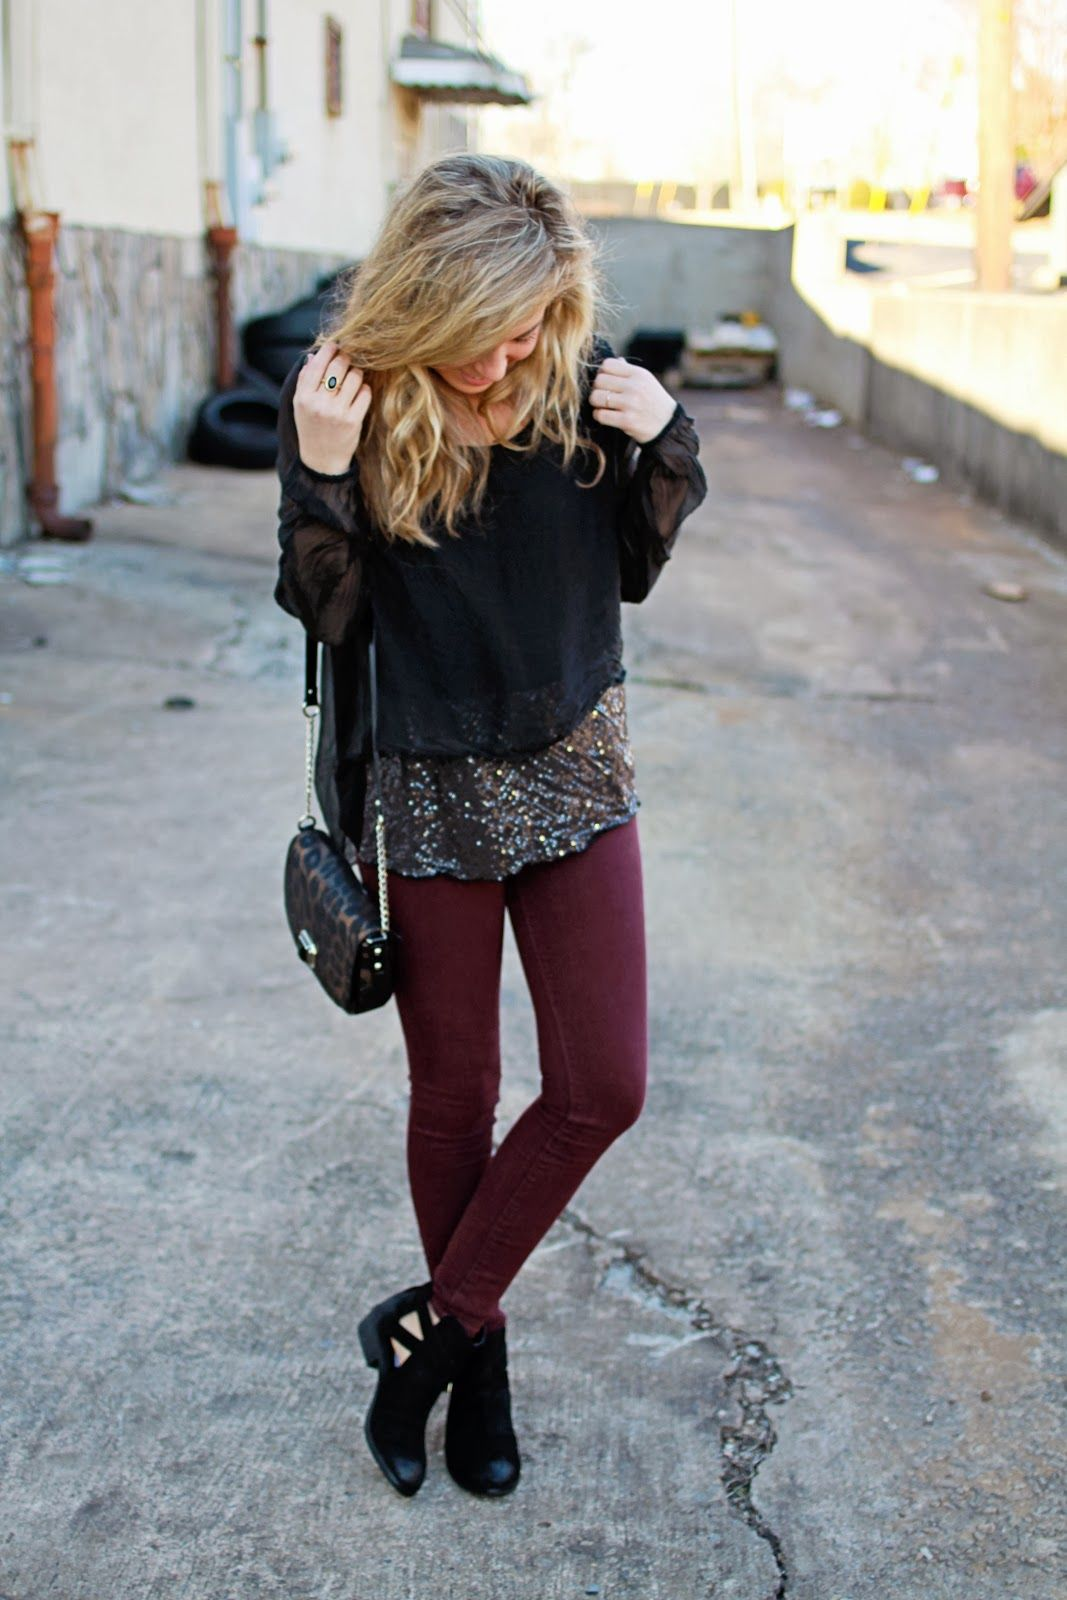 Perfect date night outfit!